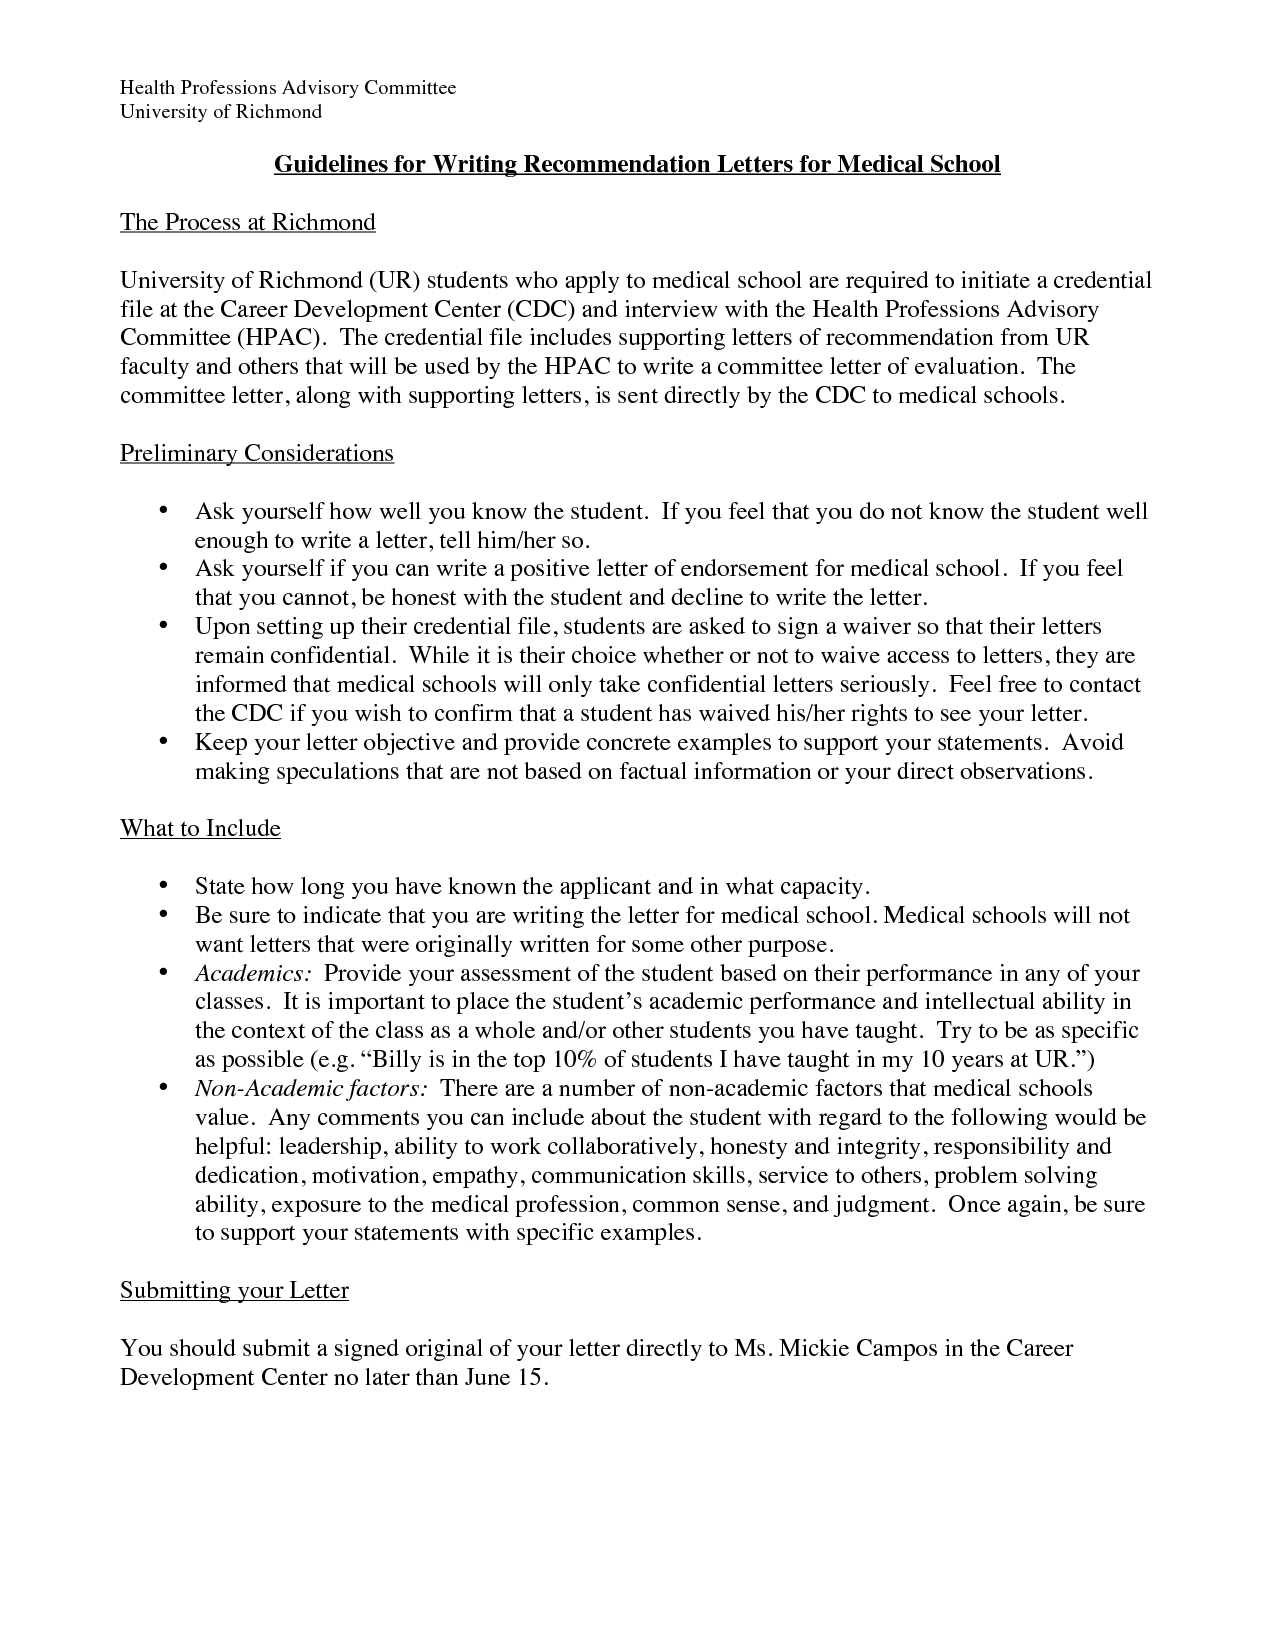 Medical School Letter Of Recommendation Template - Best Doctors Note for School Template